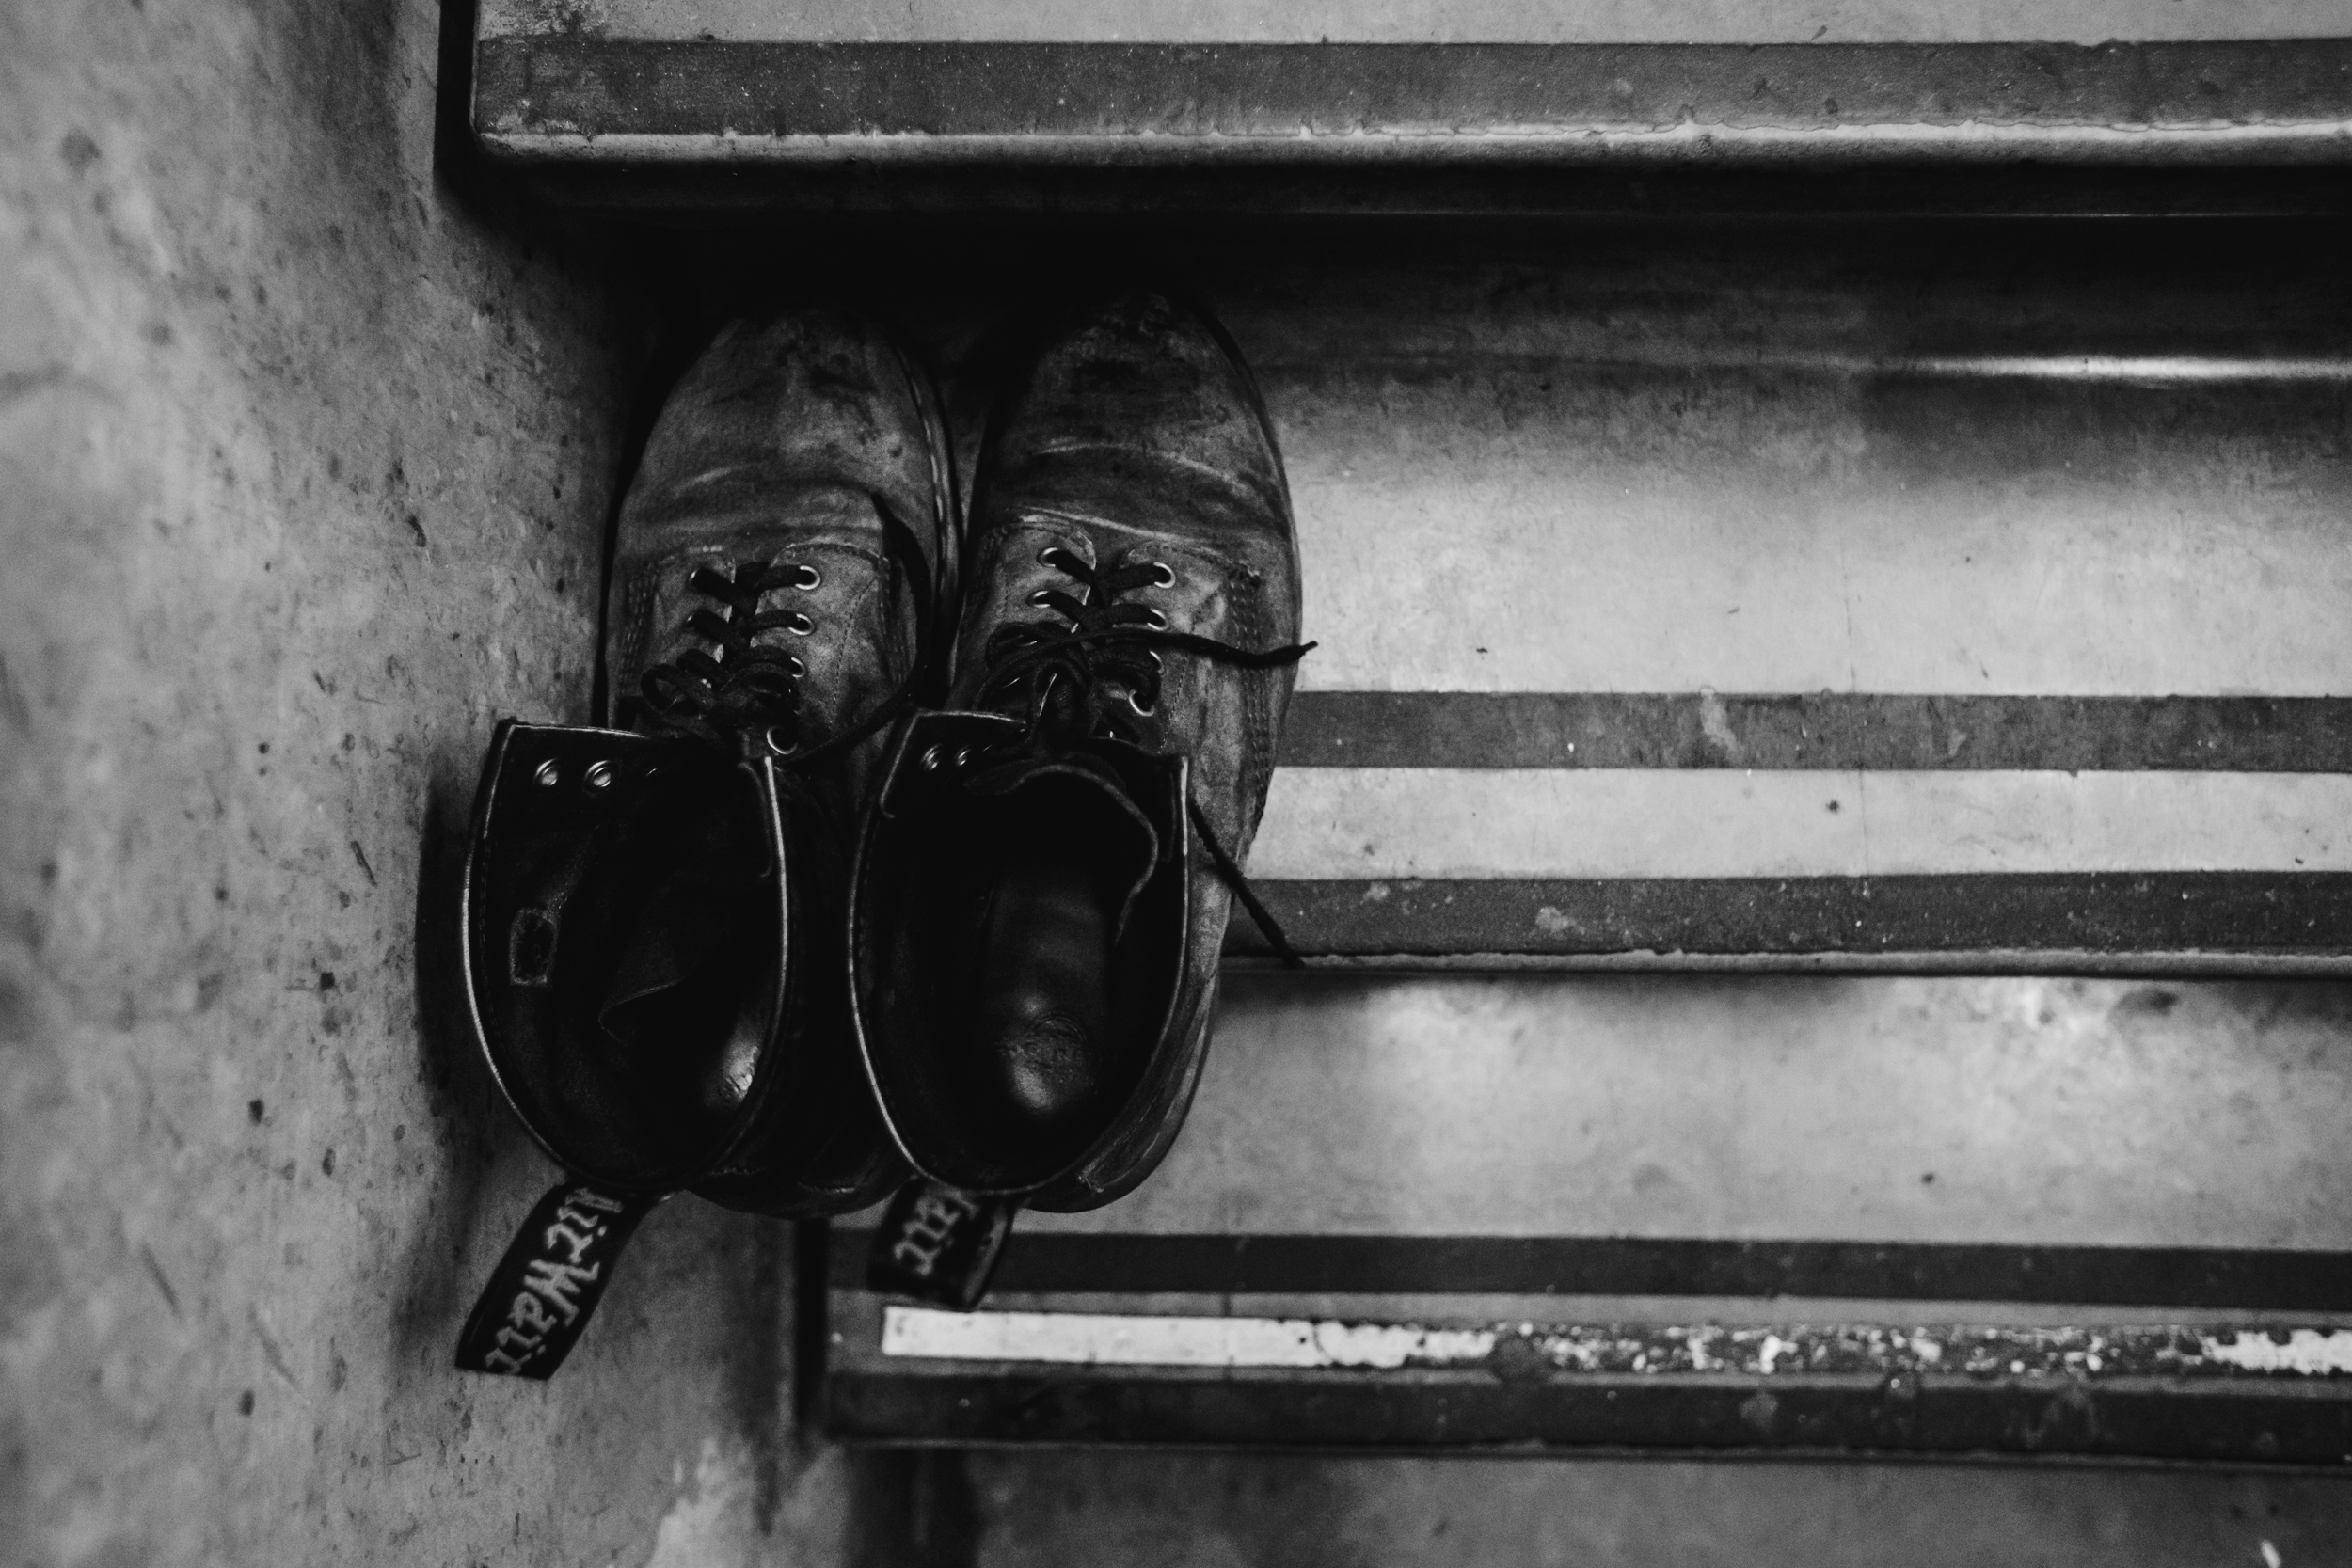 Mono drummer Dahm's shoes await his return just to the side of the stage